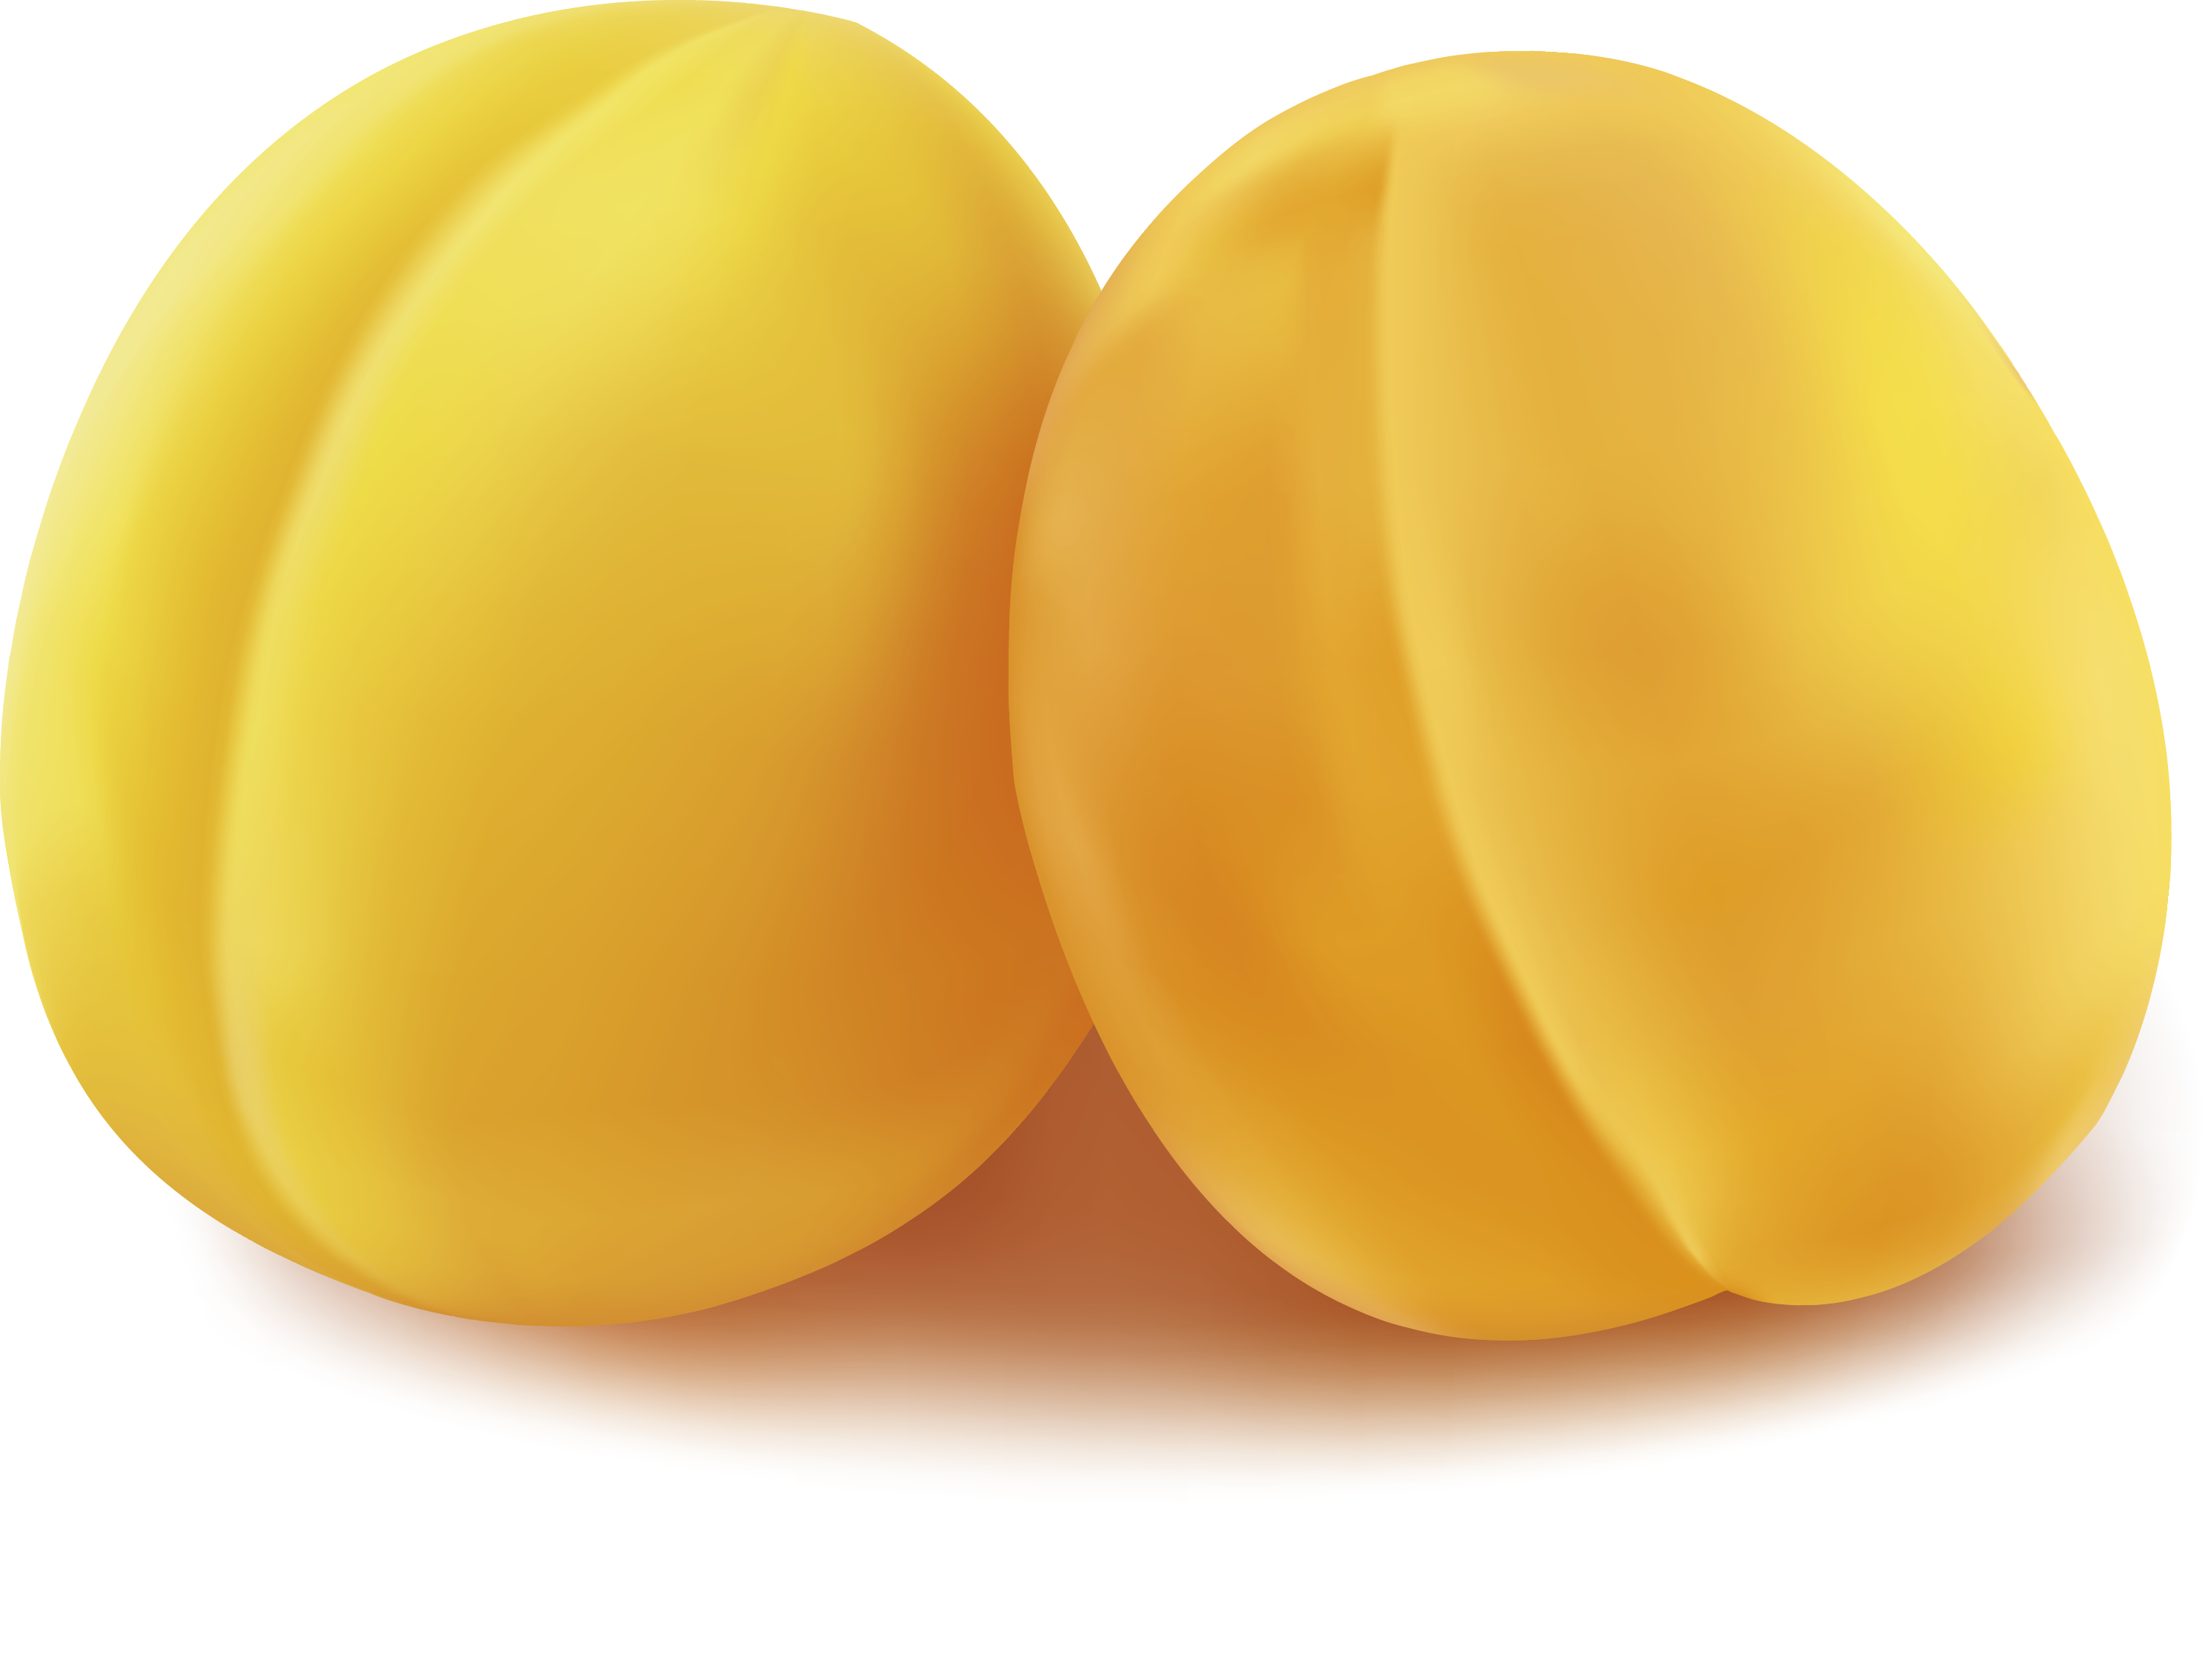 Yellow Commodity Fruit - Peach vector 2986*2272 transprent Png Free ...